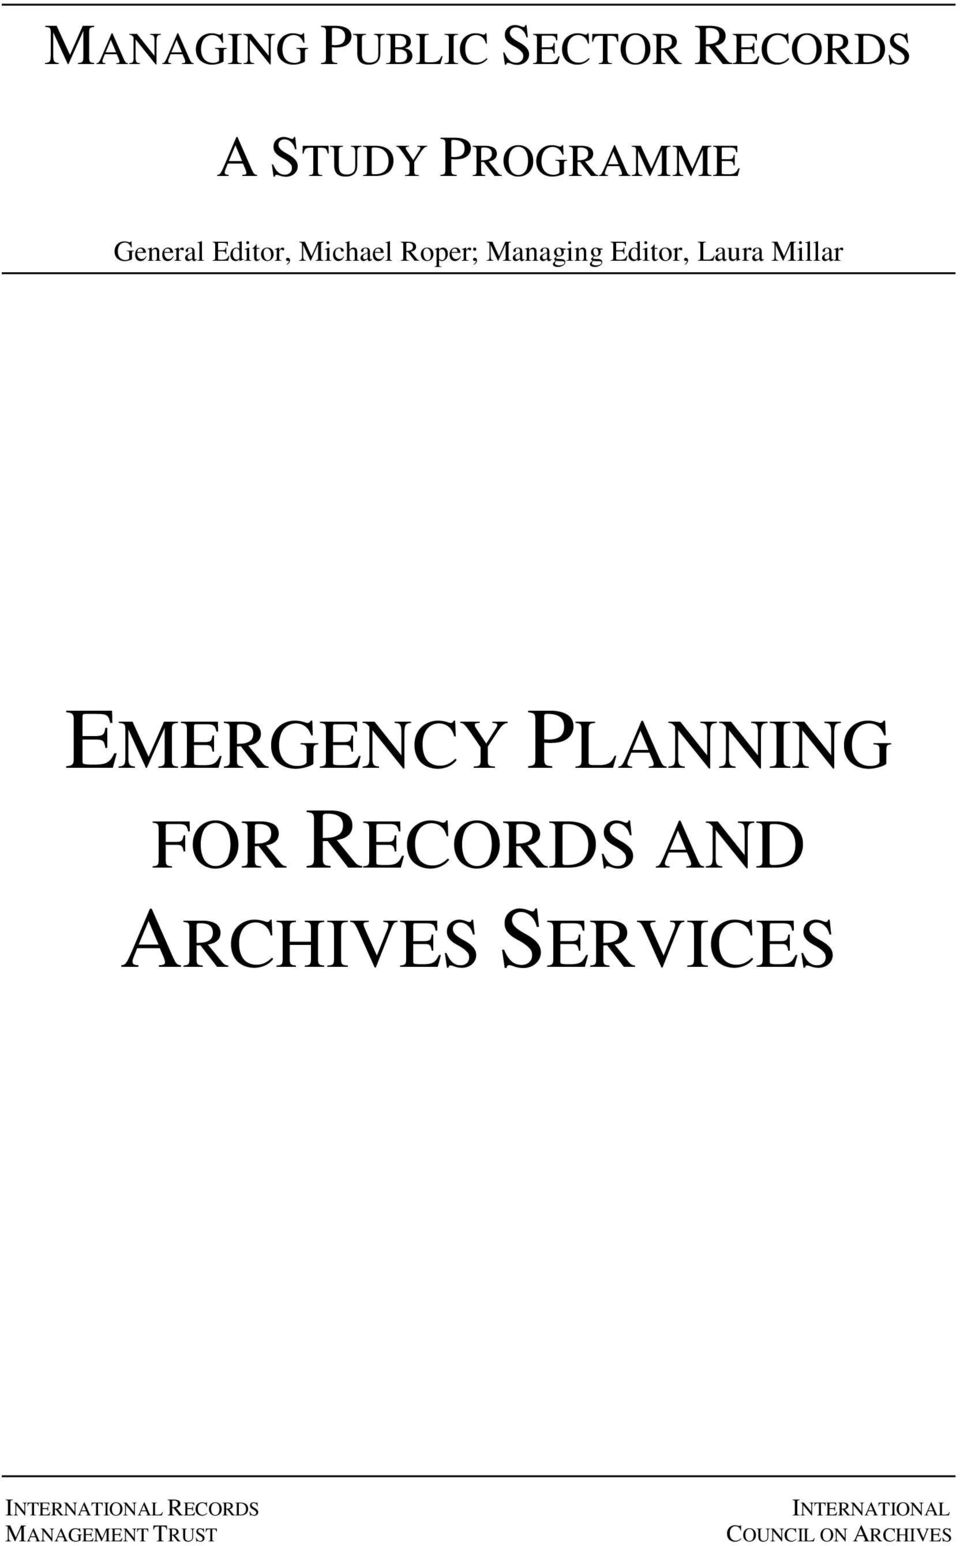 EMERGENCY PLANNING FOR RECORDS AND ARCHIVES SERVICES